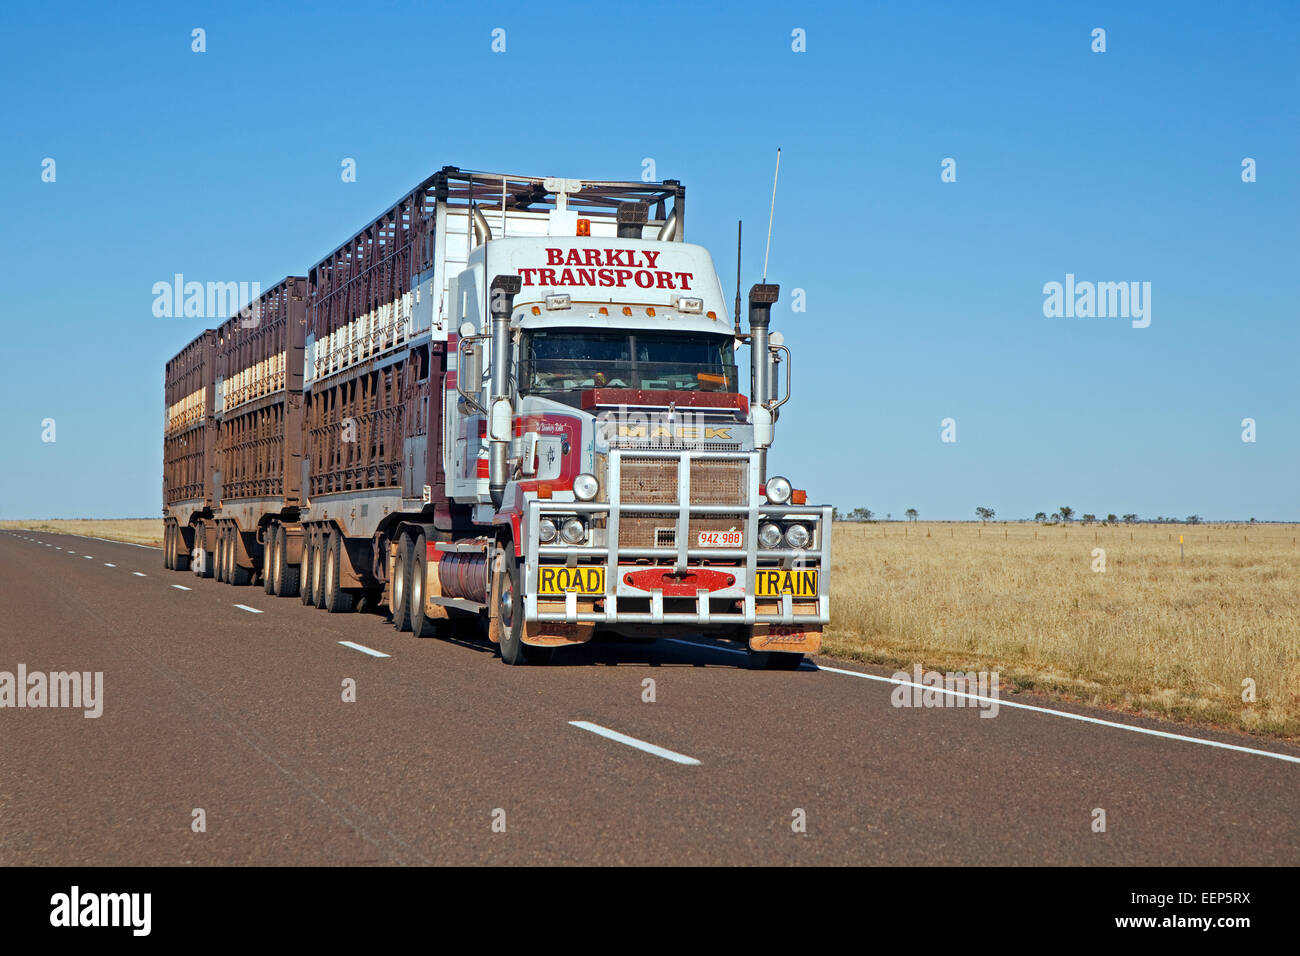 Cattle transport by triple road train fitted with roo bar on the Barkly Highway, Northern Territory, Australia - Stock Image